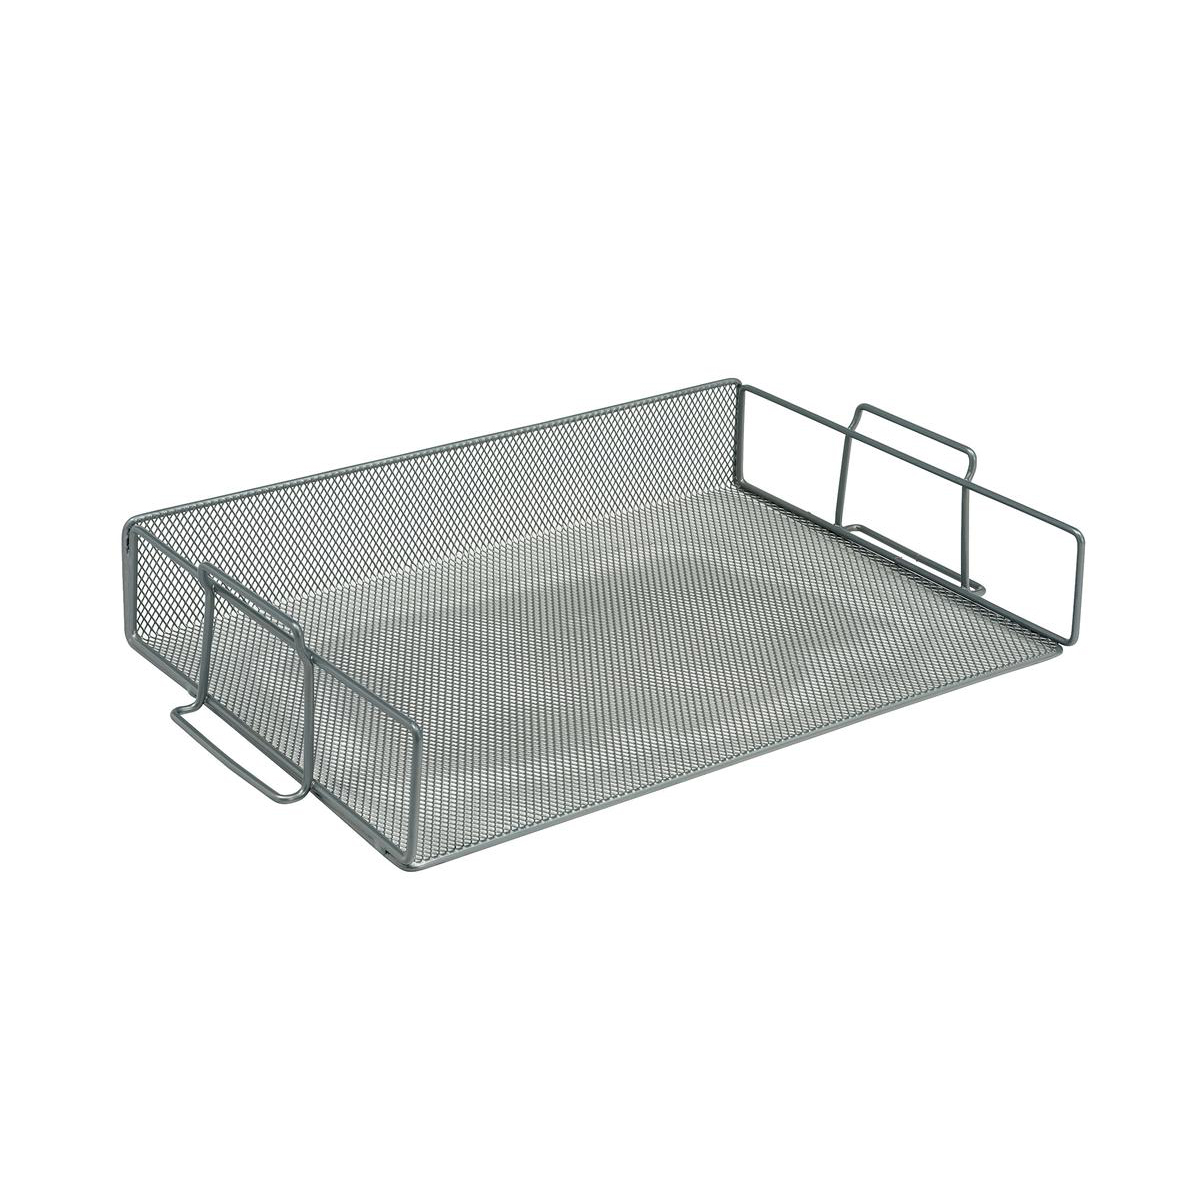 Letter Trays 5 Star Office Mesh Letter Tray Scratch Resistant Stackable Side Load Landscape Foolscap Silver